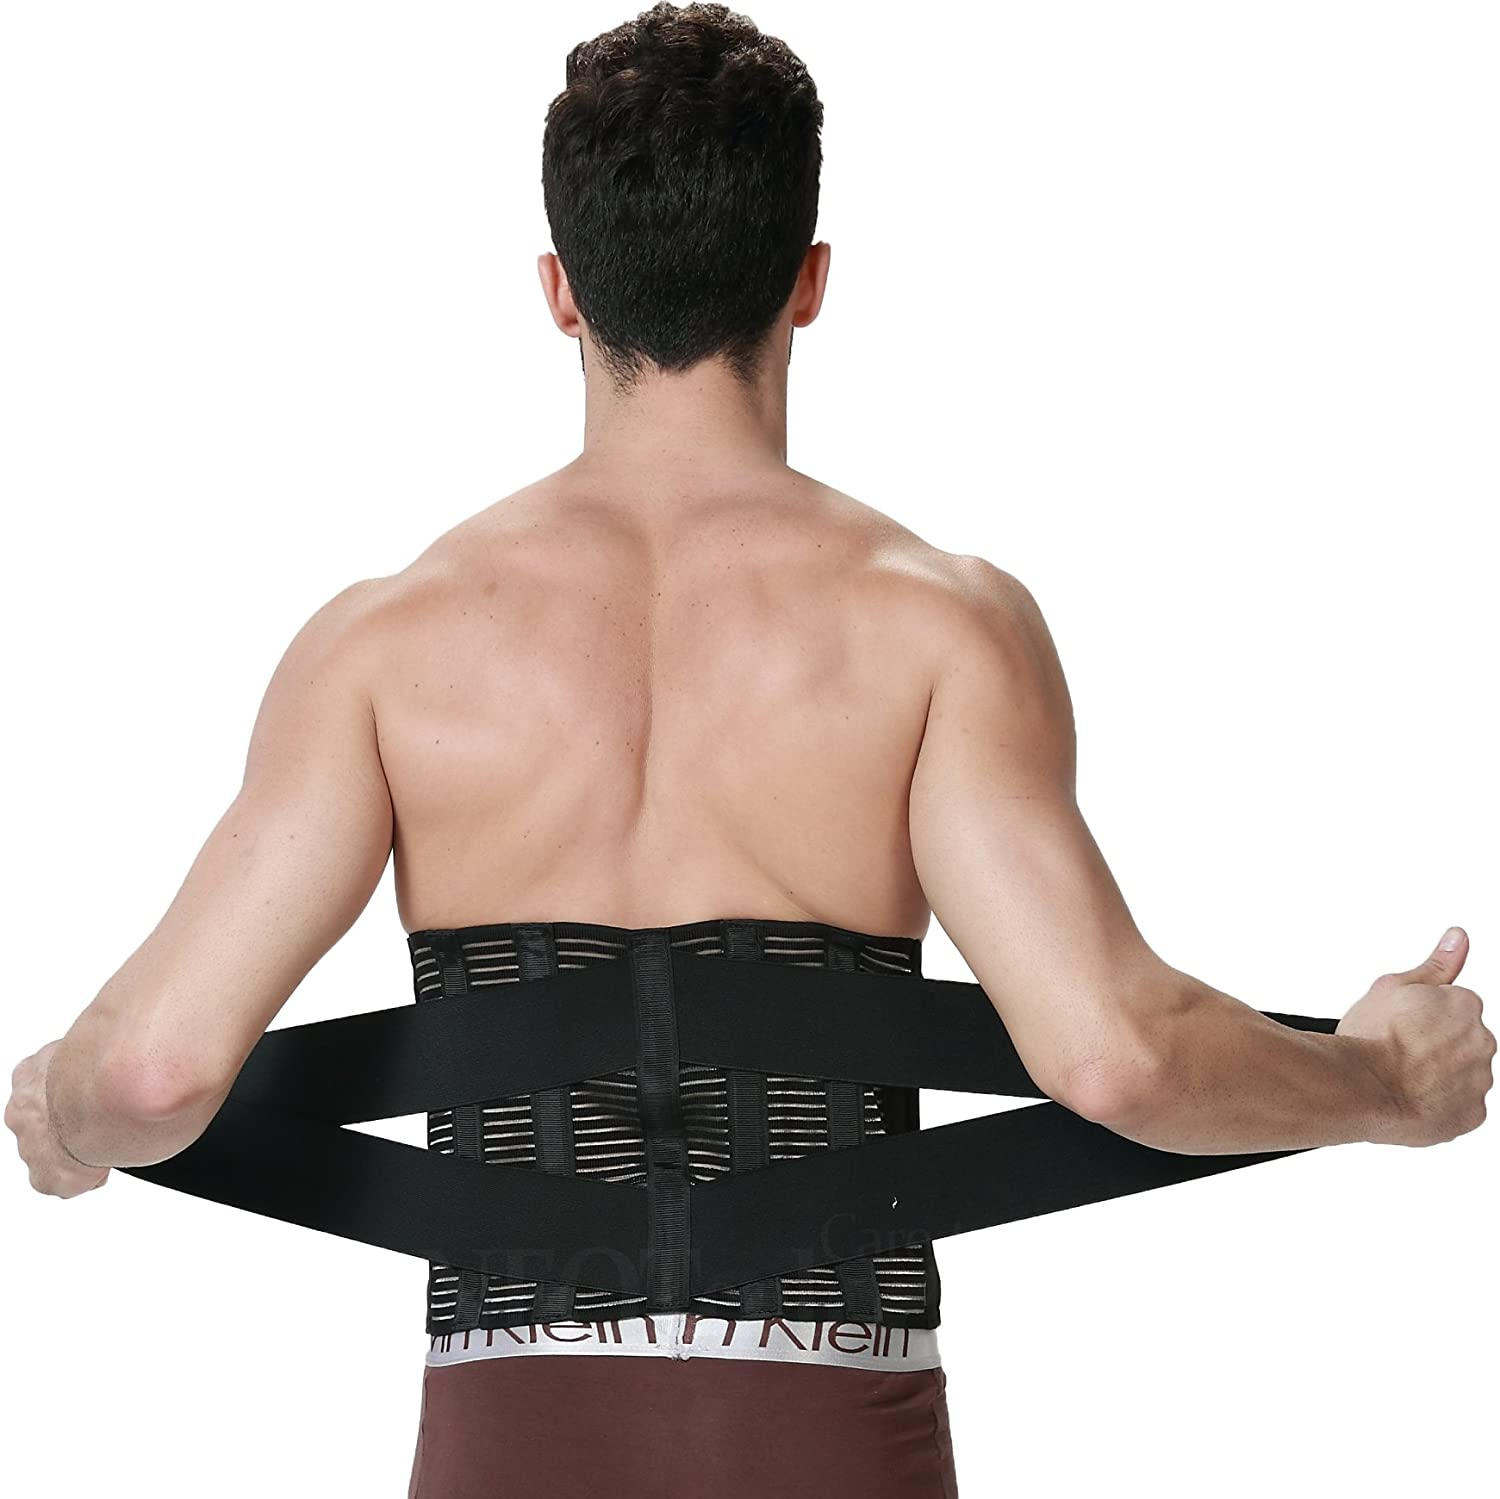 Lumbar Support Belt Lifting Size S Black Pain Relief Adjustable Compression /& Breathable for Gym Wide Protection Work Posture Neotech Care Back Brace